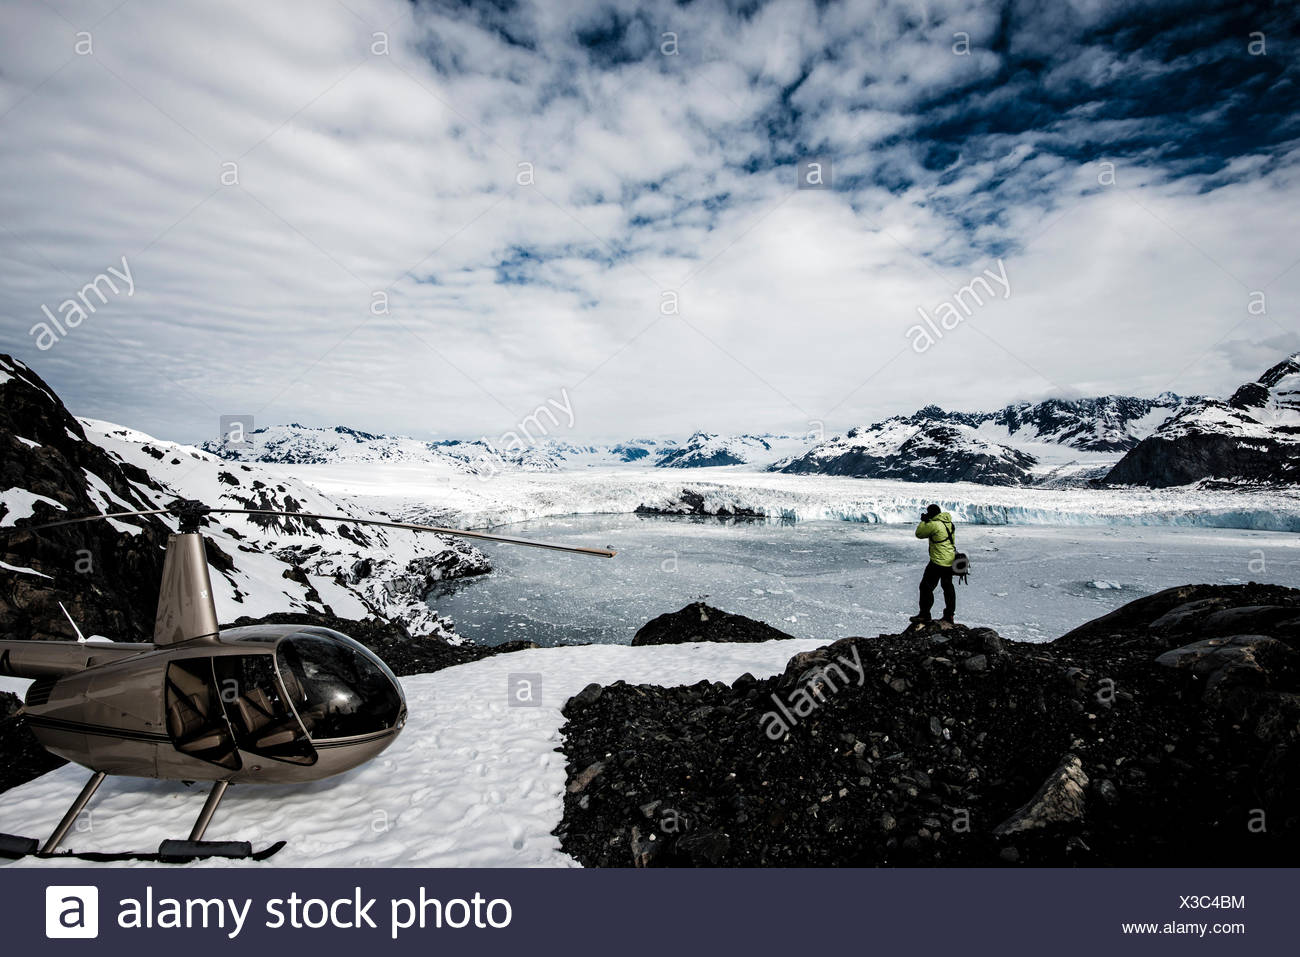 A man taking photos of a melting glacier with a helicopter waiting nearby.   Alaska, USA. - Stock Image